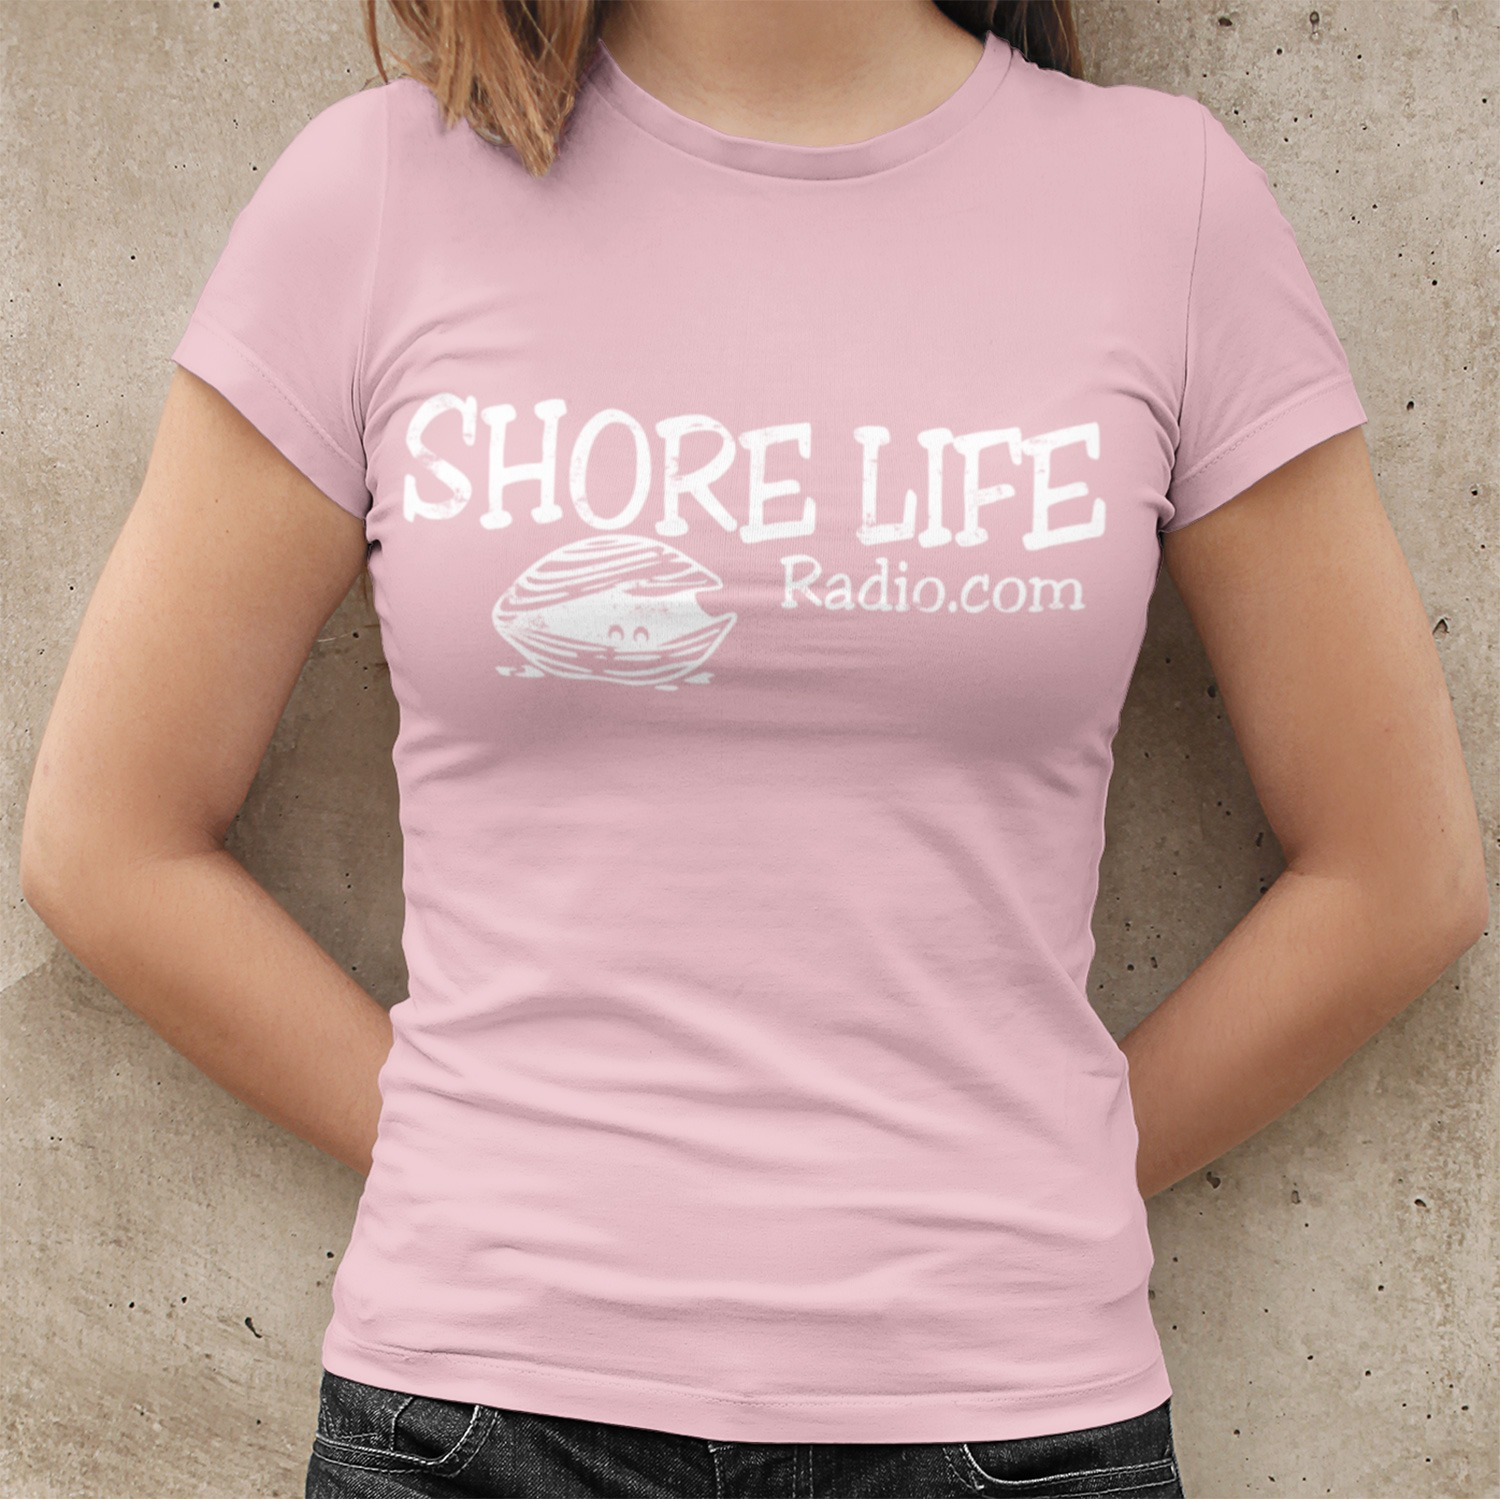 Shore Life Radio Clam Women's Fitted T-Shirt, The Troprock Shop